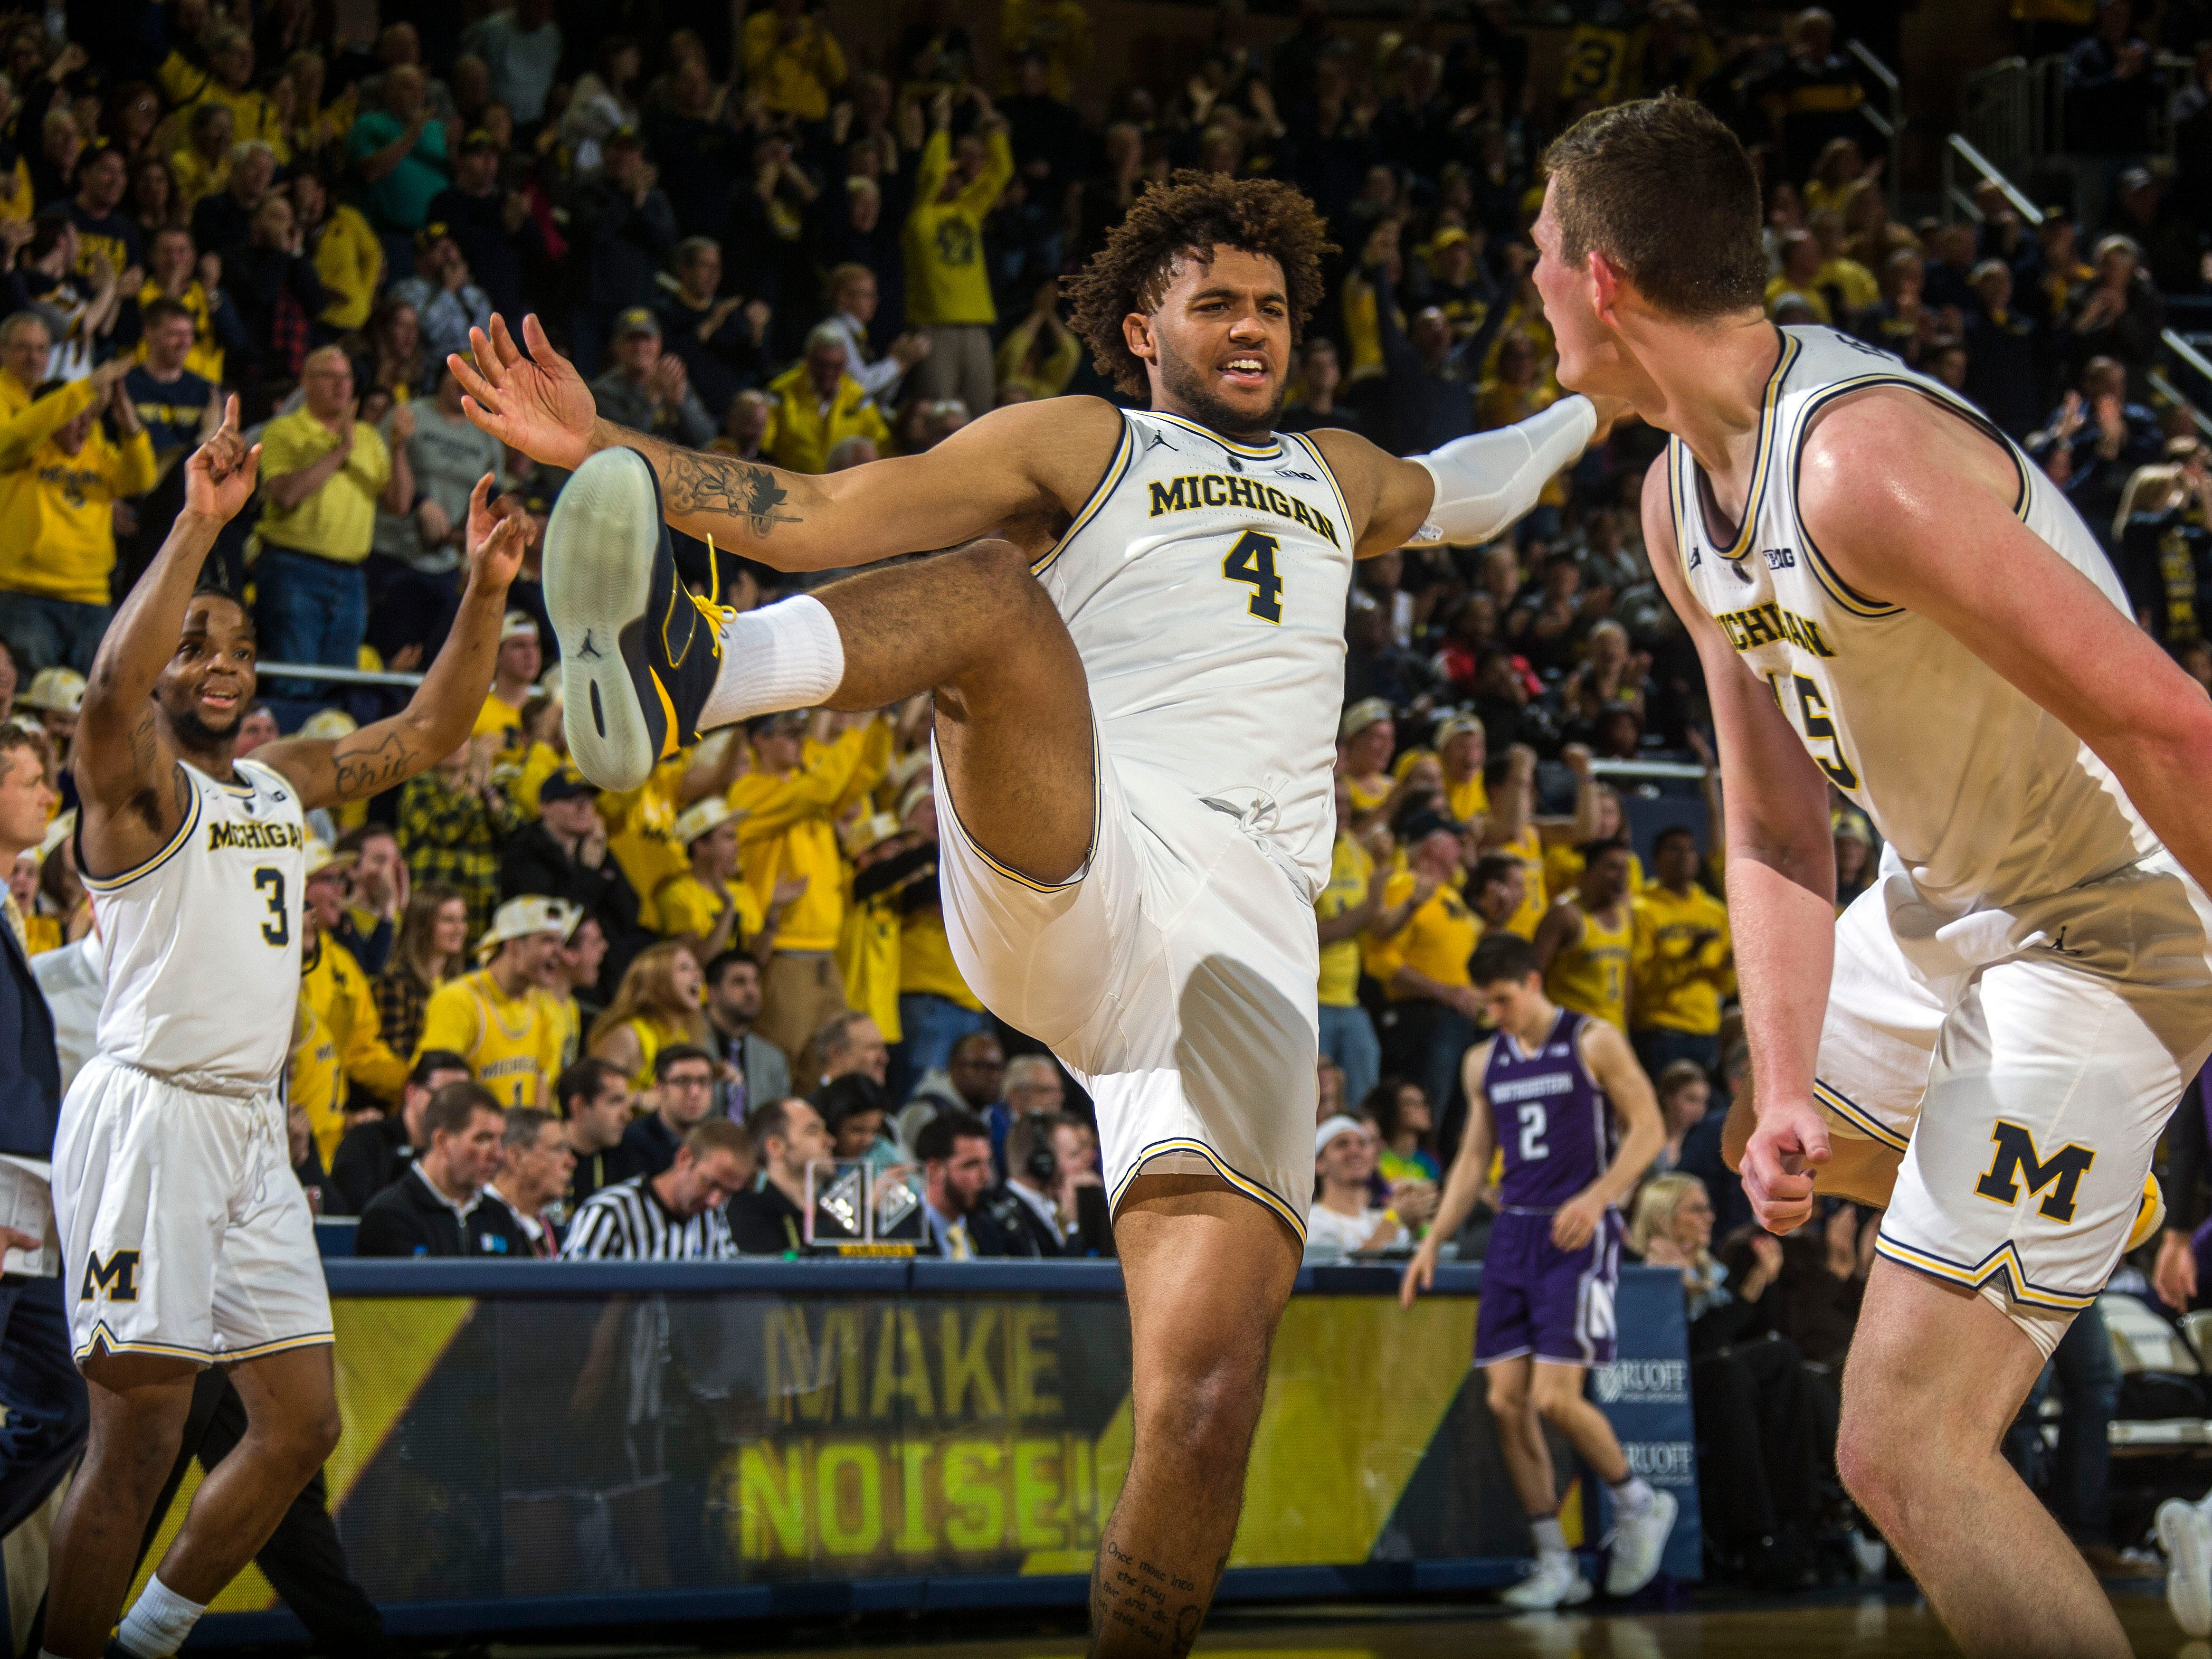 'Keep reeling them in': Michigan sets school mark with 17-0 start after win over Northwestern